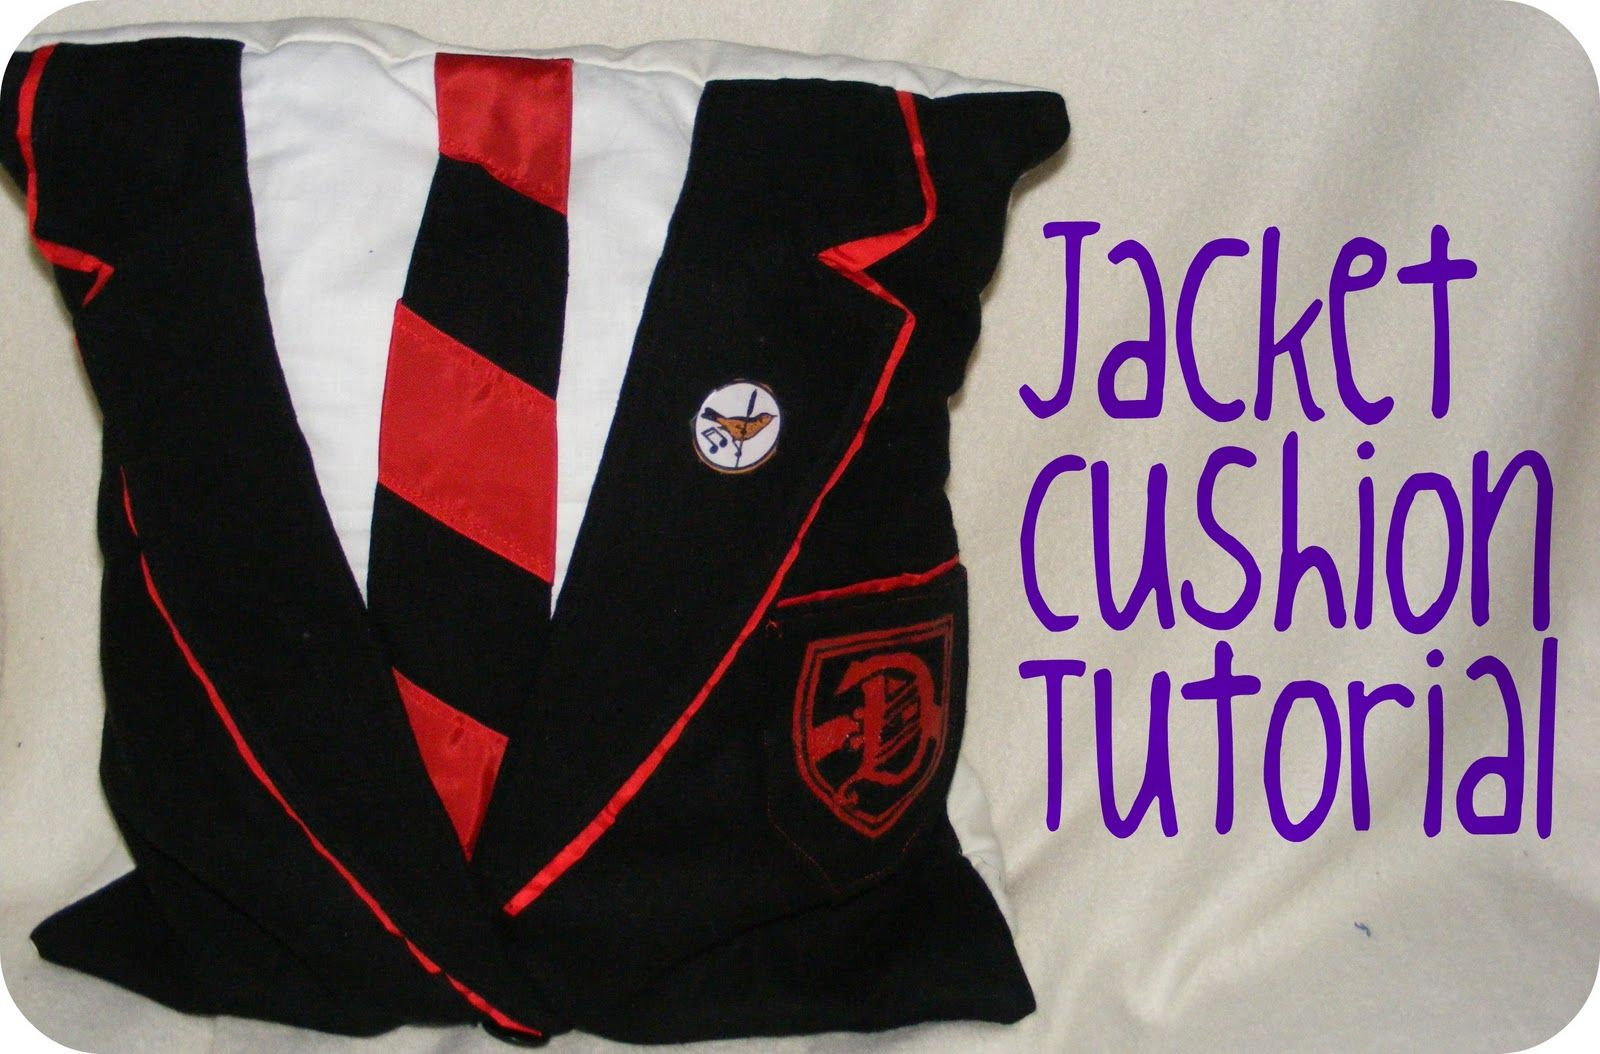 Harry potter and glee dalton warblers blazer cushion these are so